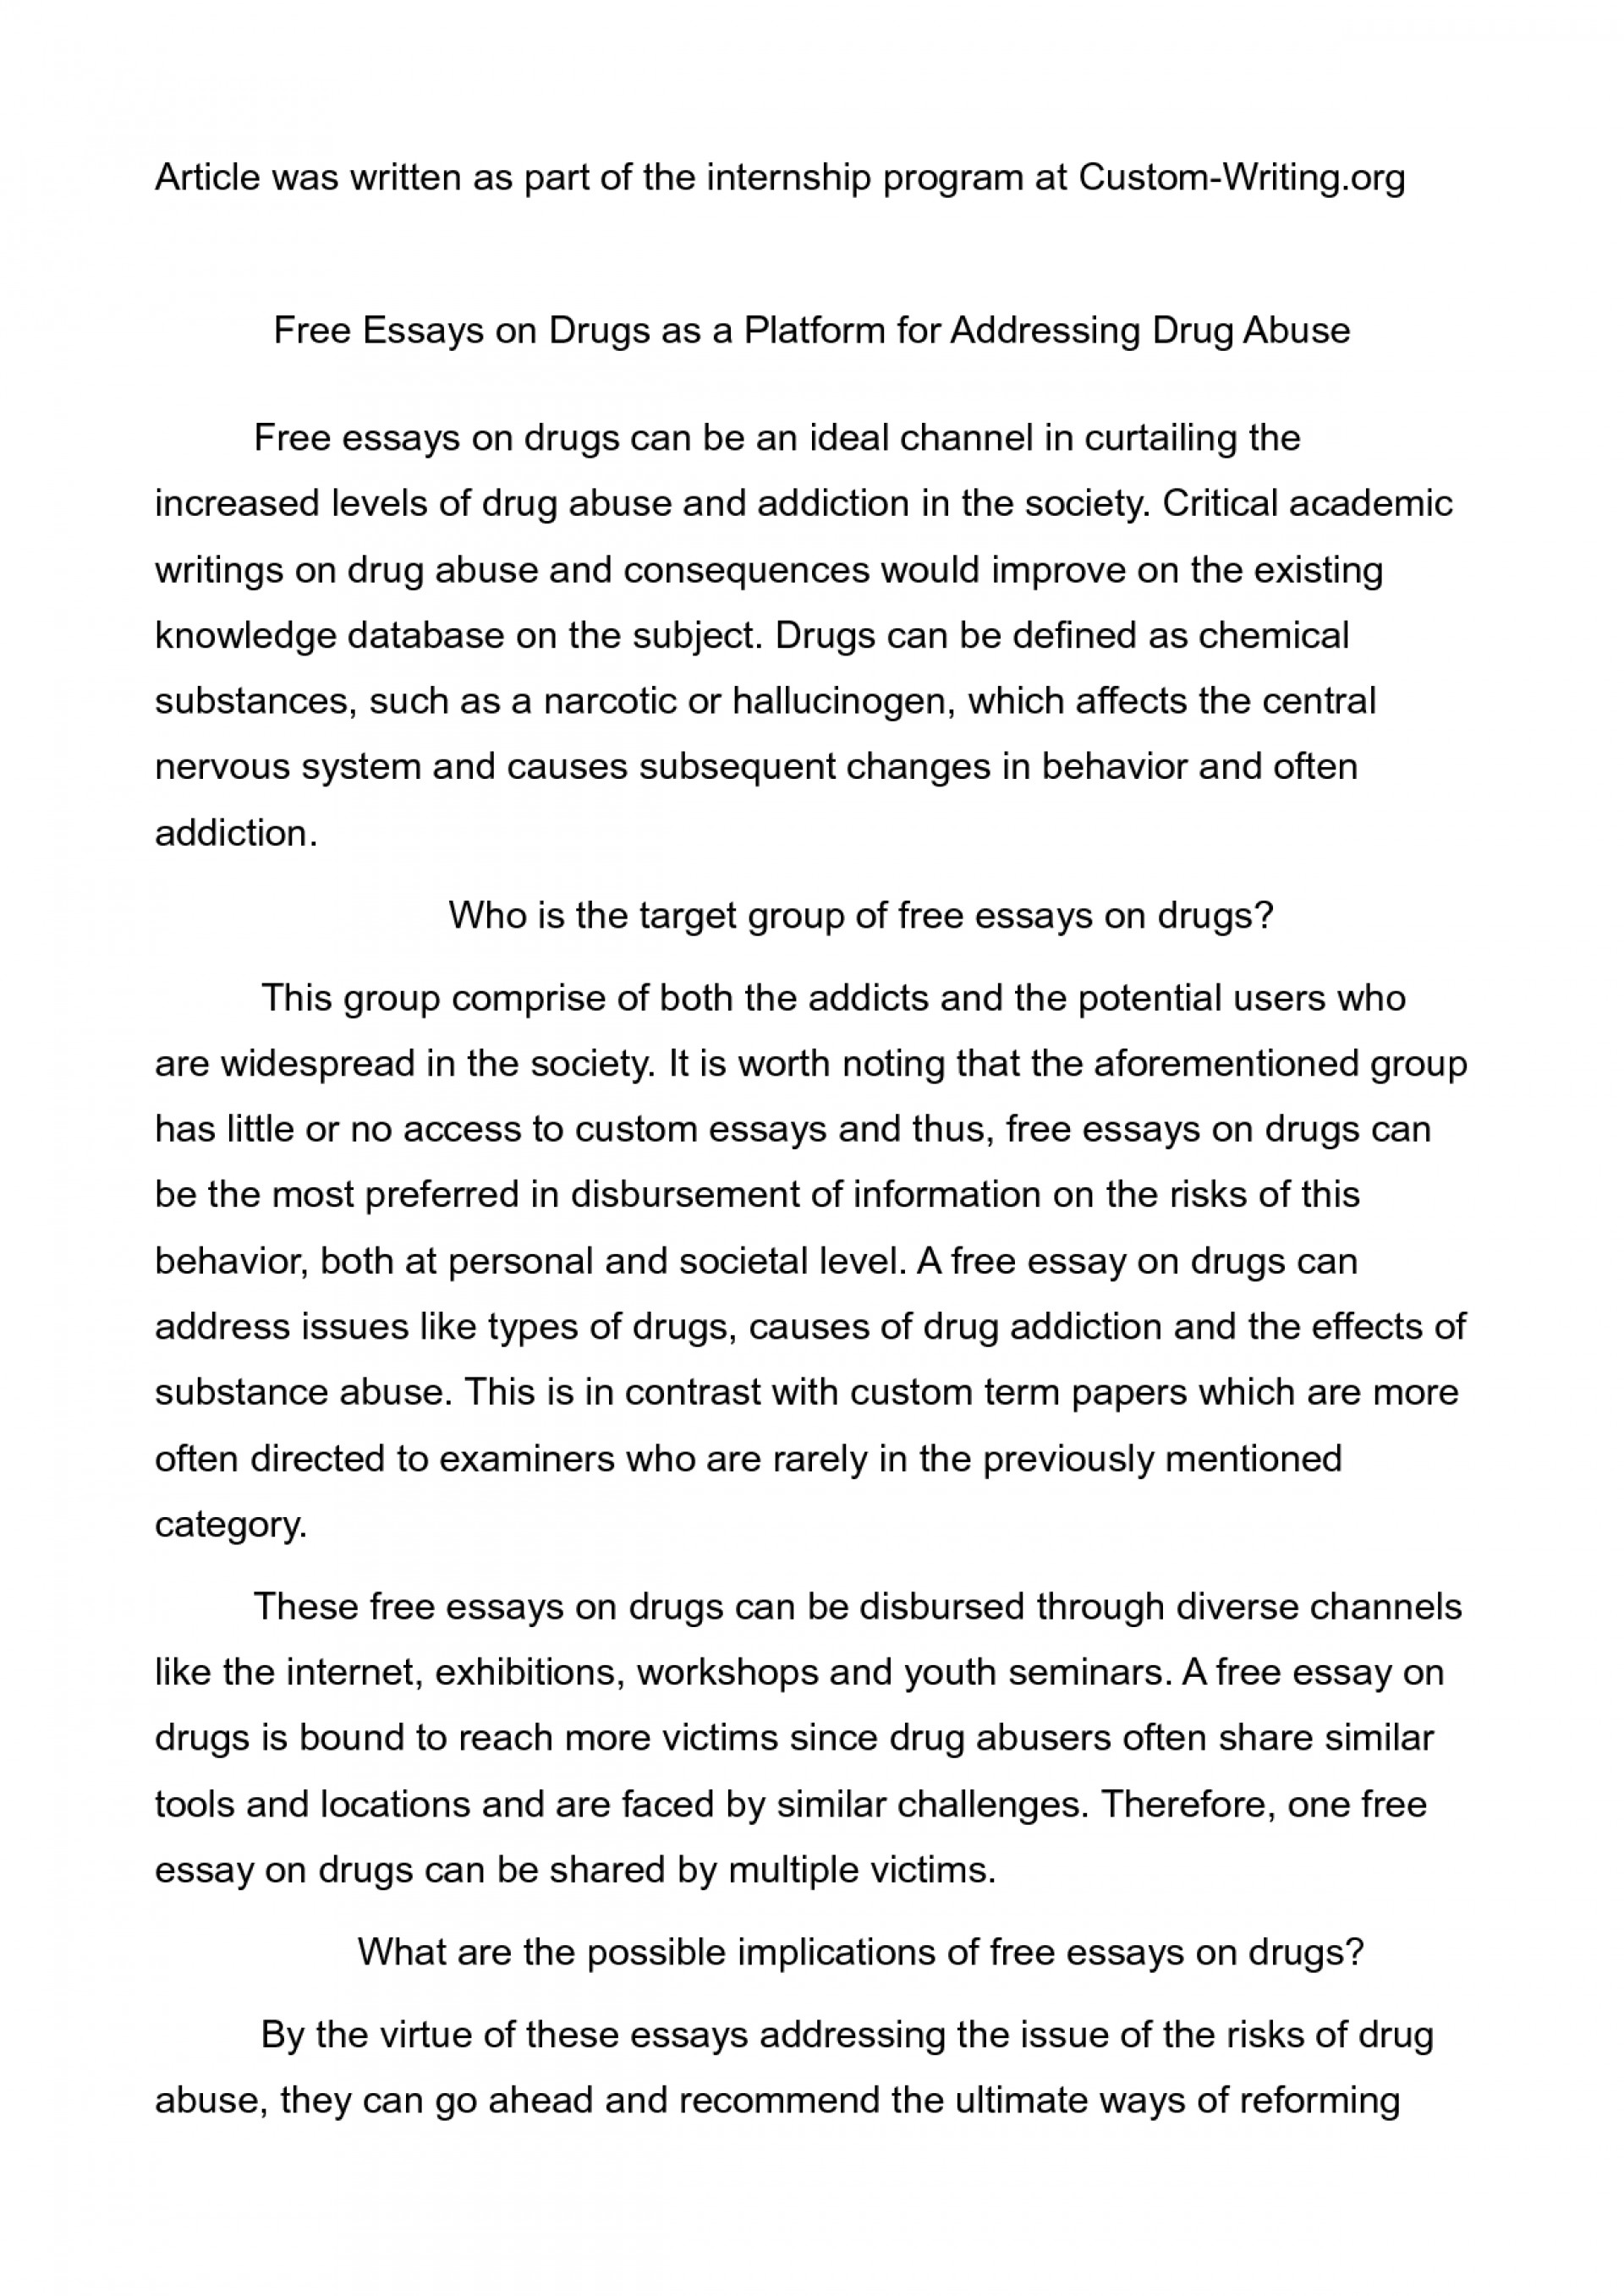 009 Argumentative Essay About Drugs Amazing Sample 6th Grade Introduction Format 1920